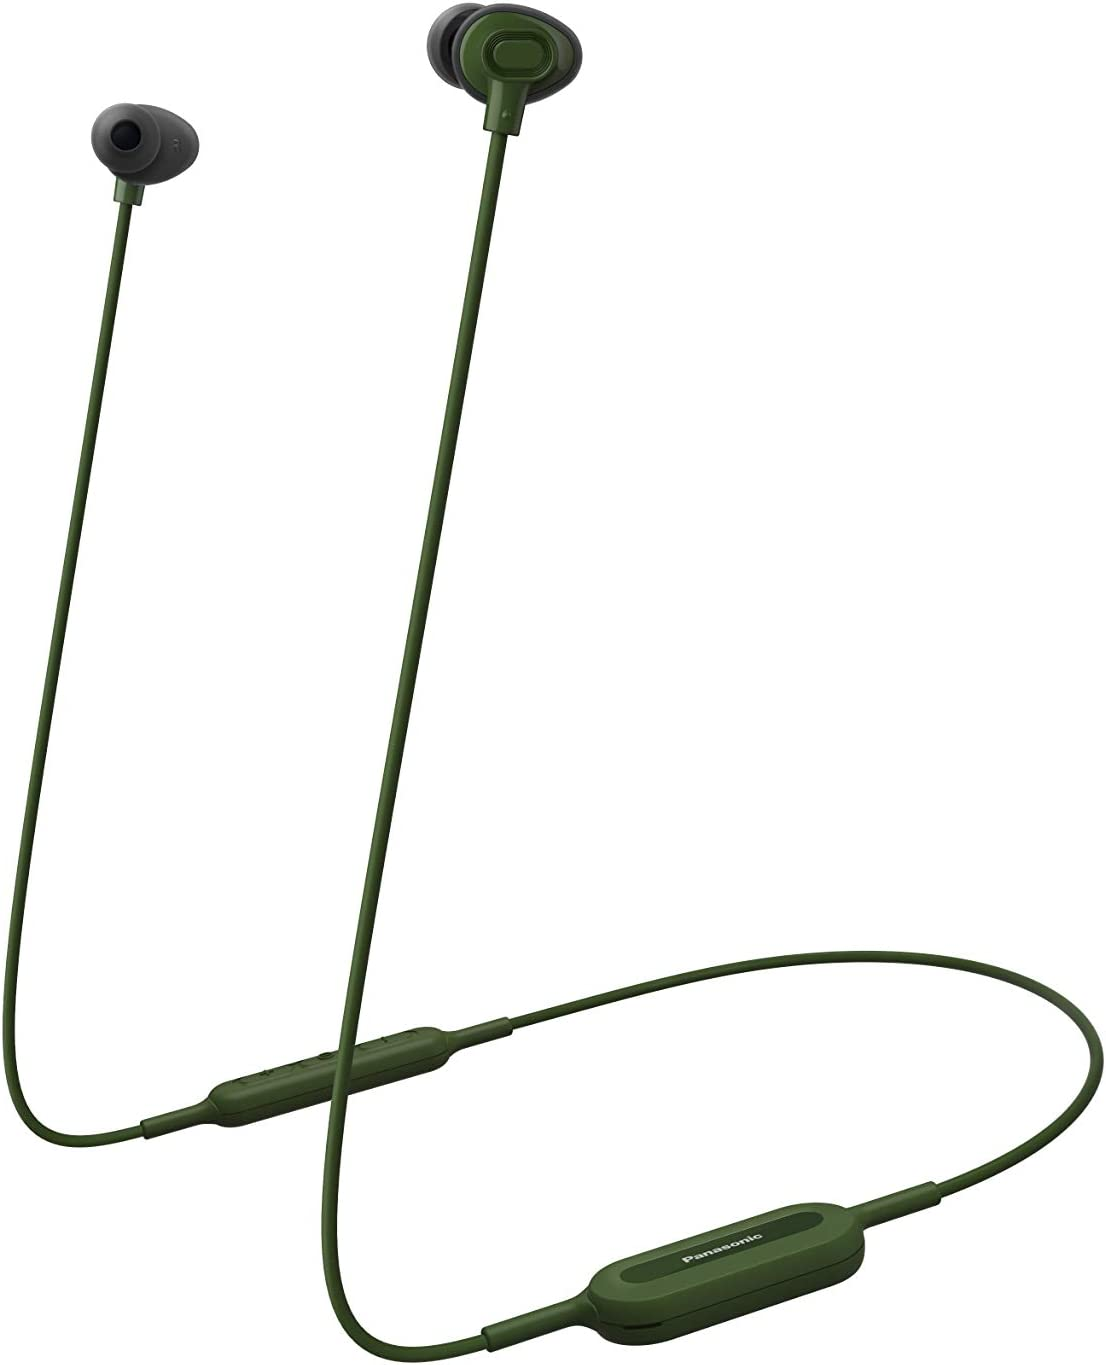 Panasonic RP-NJ310B – Auriculares inalámbricos (In-Ear, Bluetooth, 6hrs de batería, Manos Libres, Control Voz, Carga rápida, Ergo fit Plus, Carga por USB) Color Verde